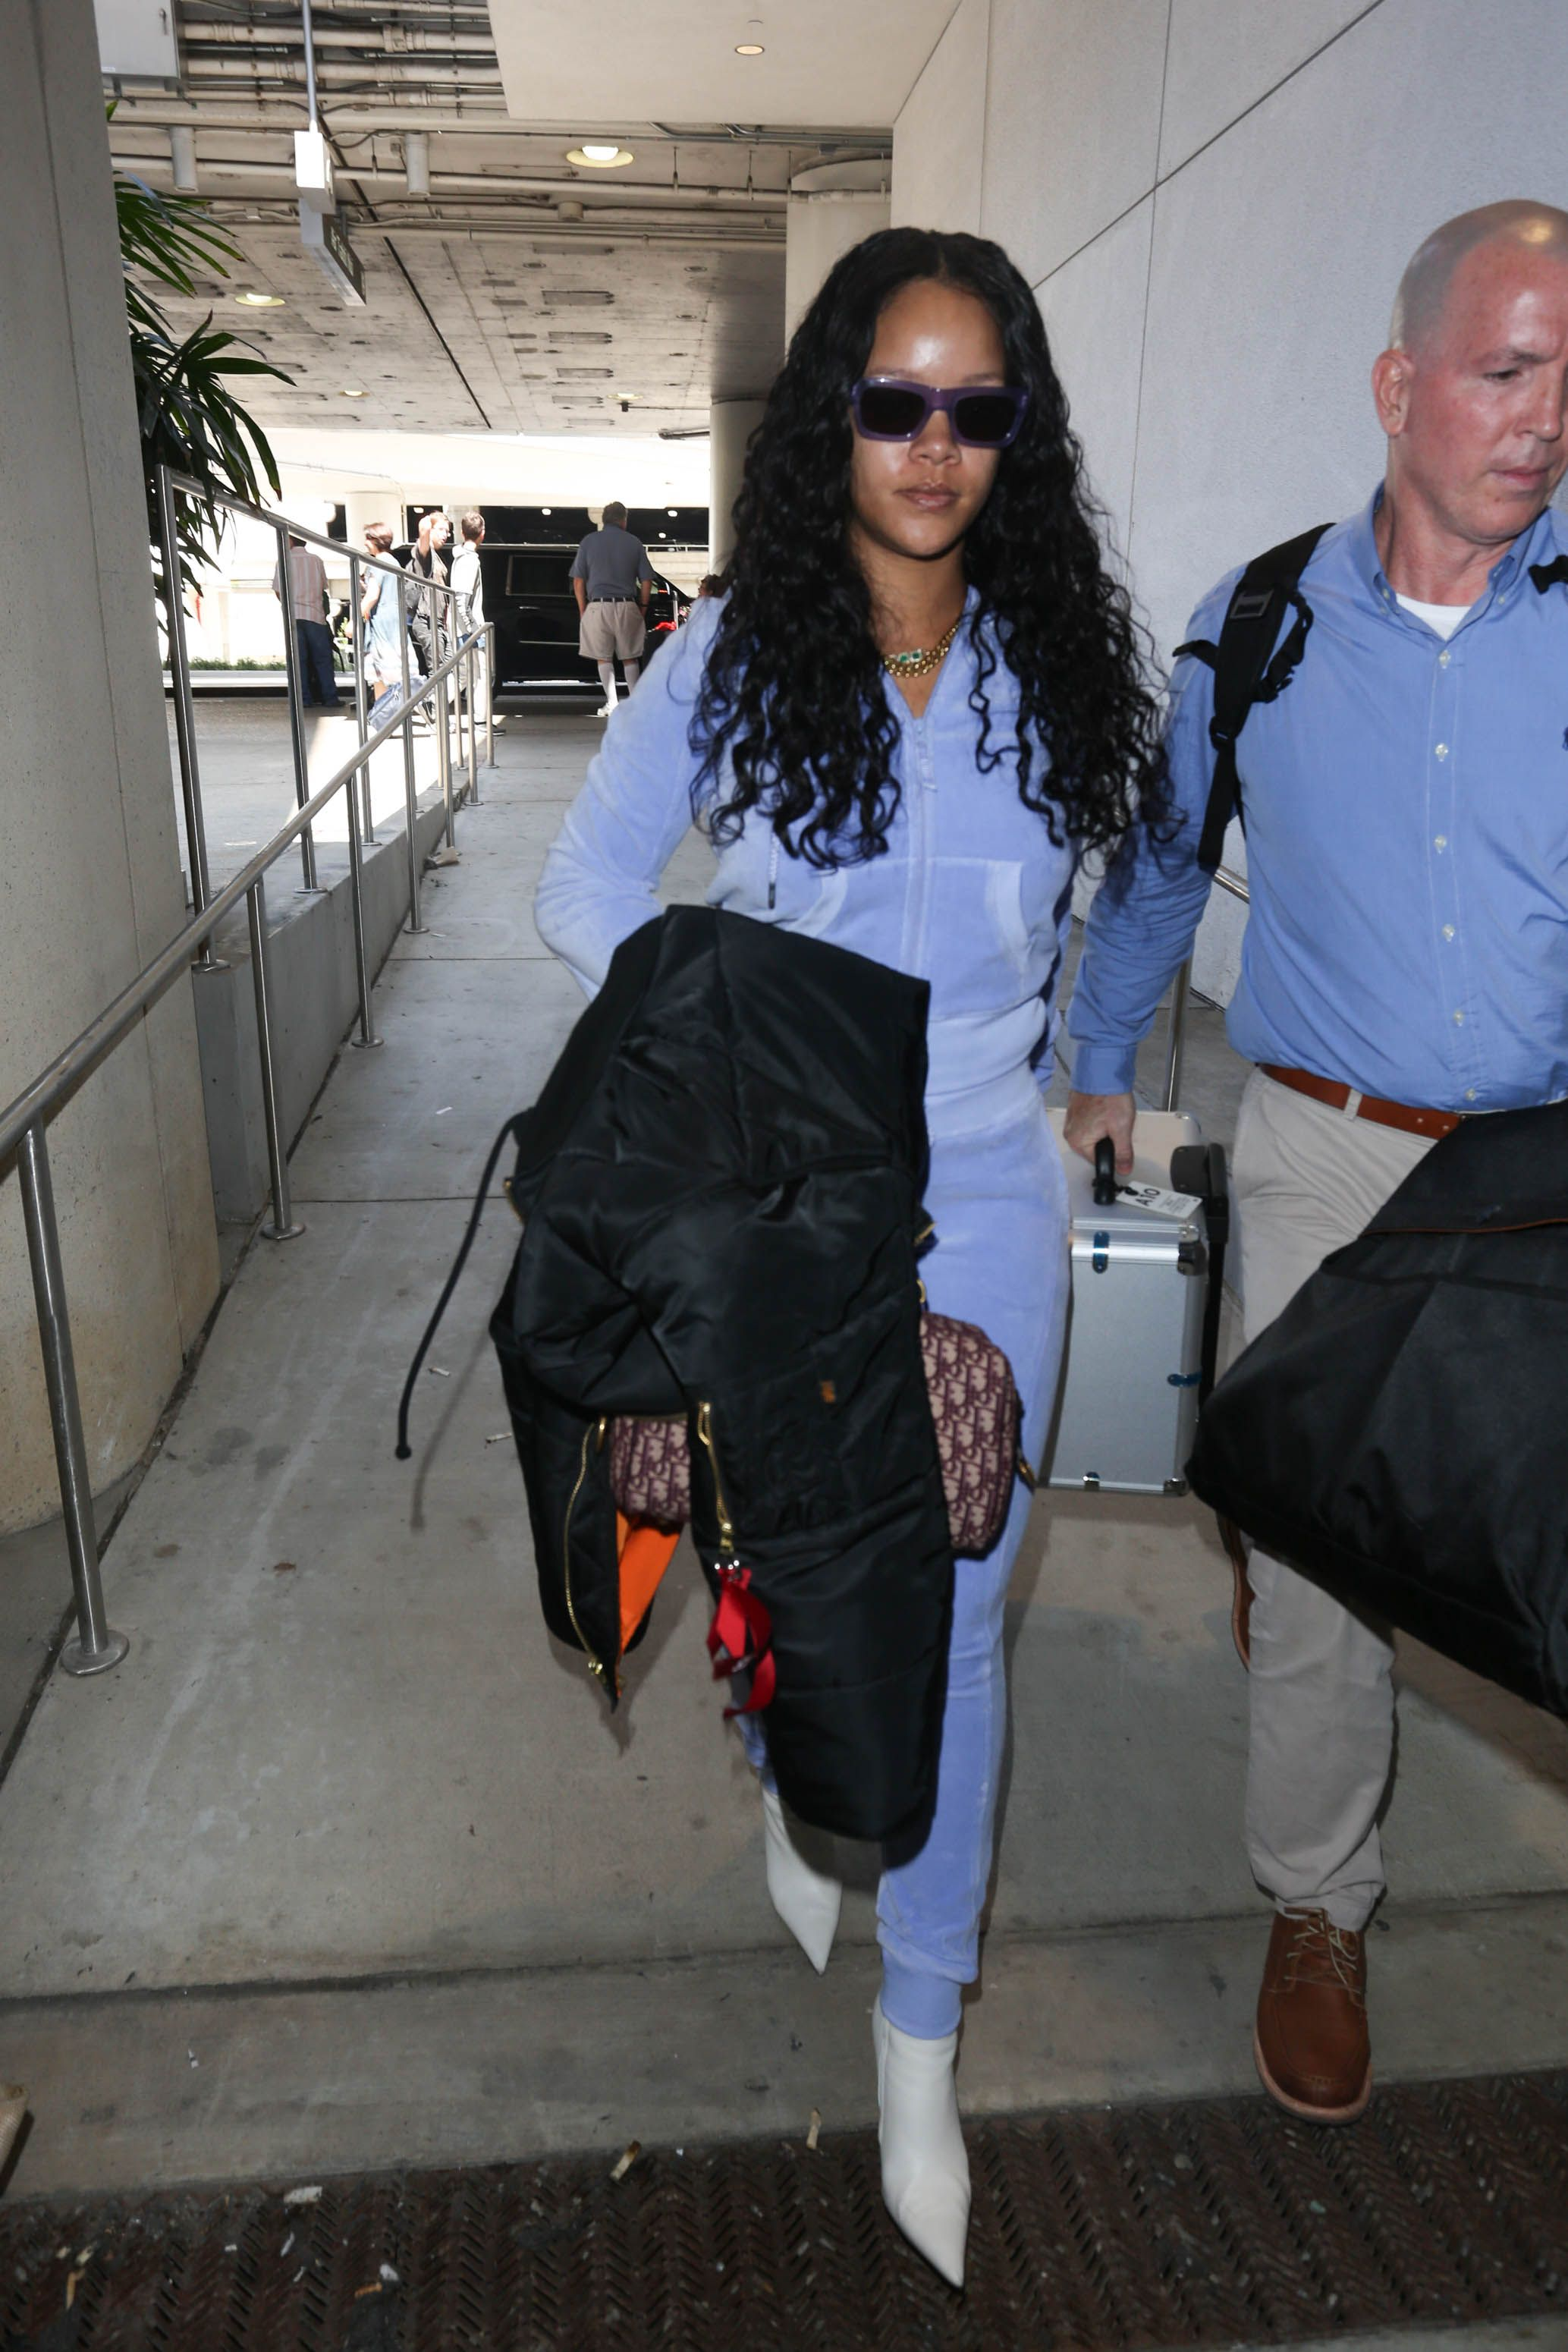 Rihannas Butt in This Tracksuit Is Straight BOIOIOING